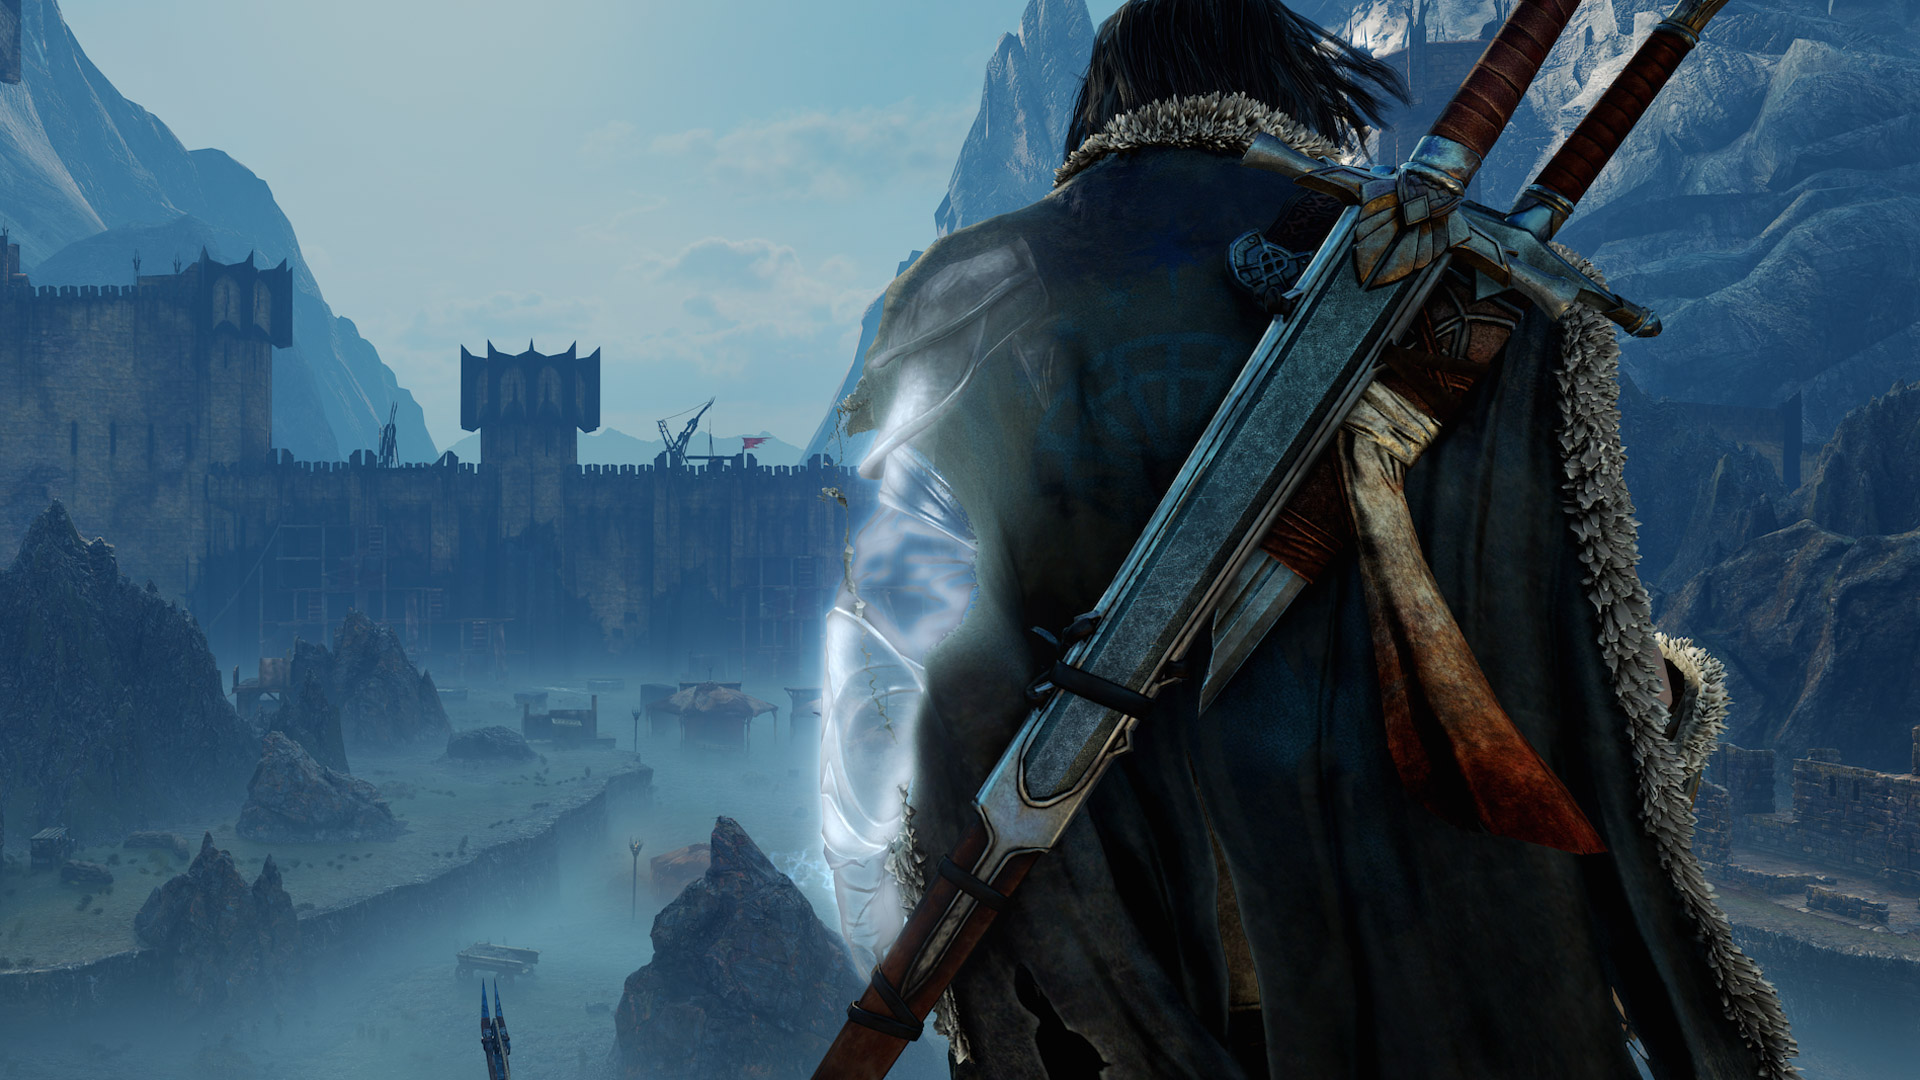 Shadow Of Mordor Wallpaper Hd